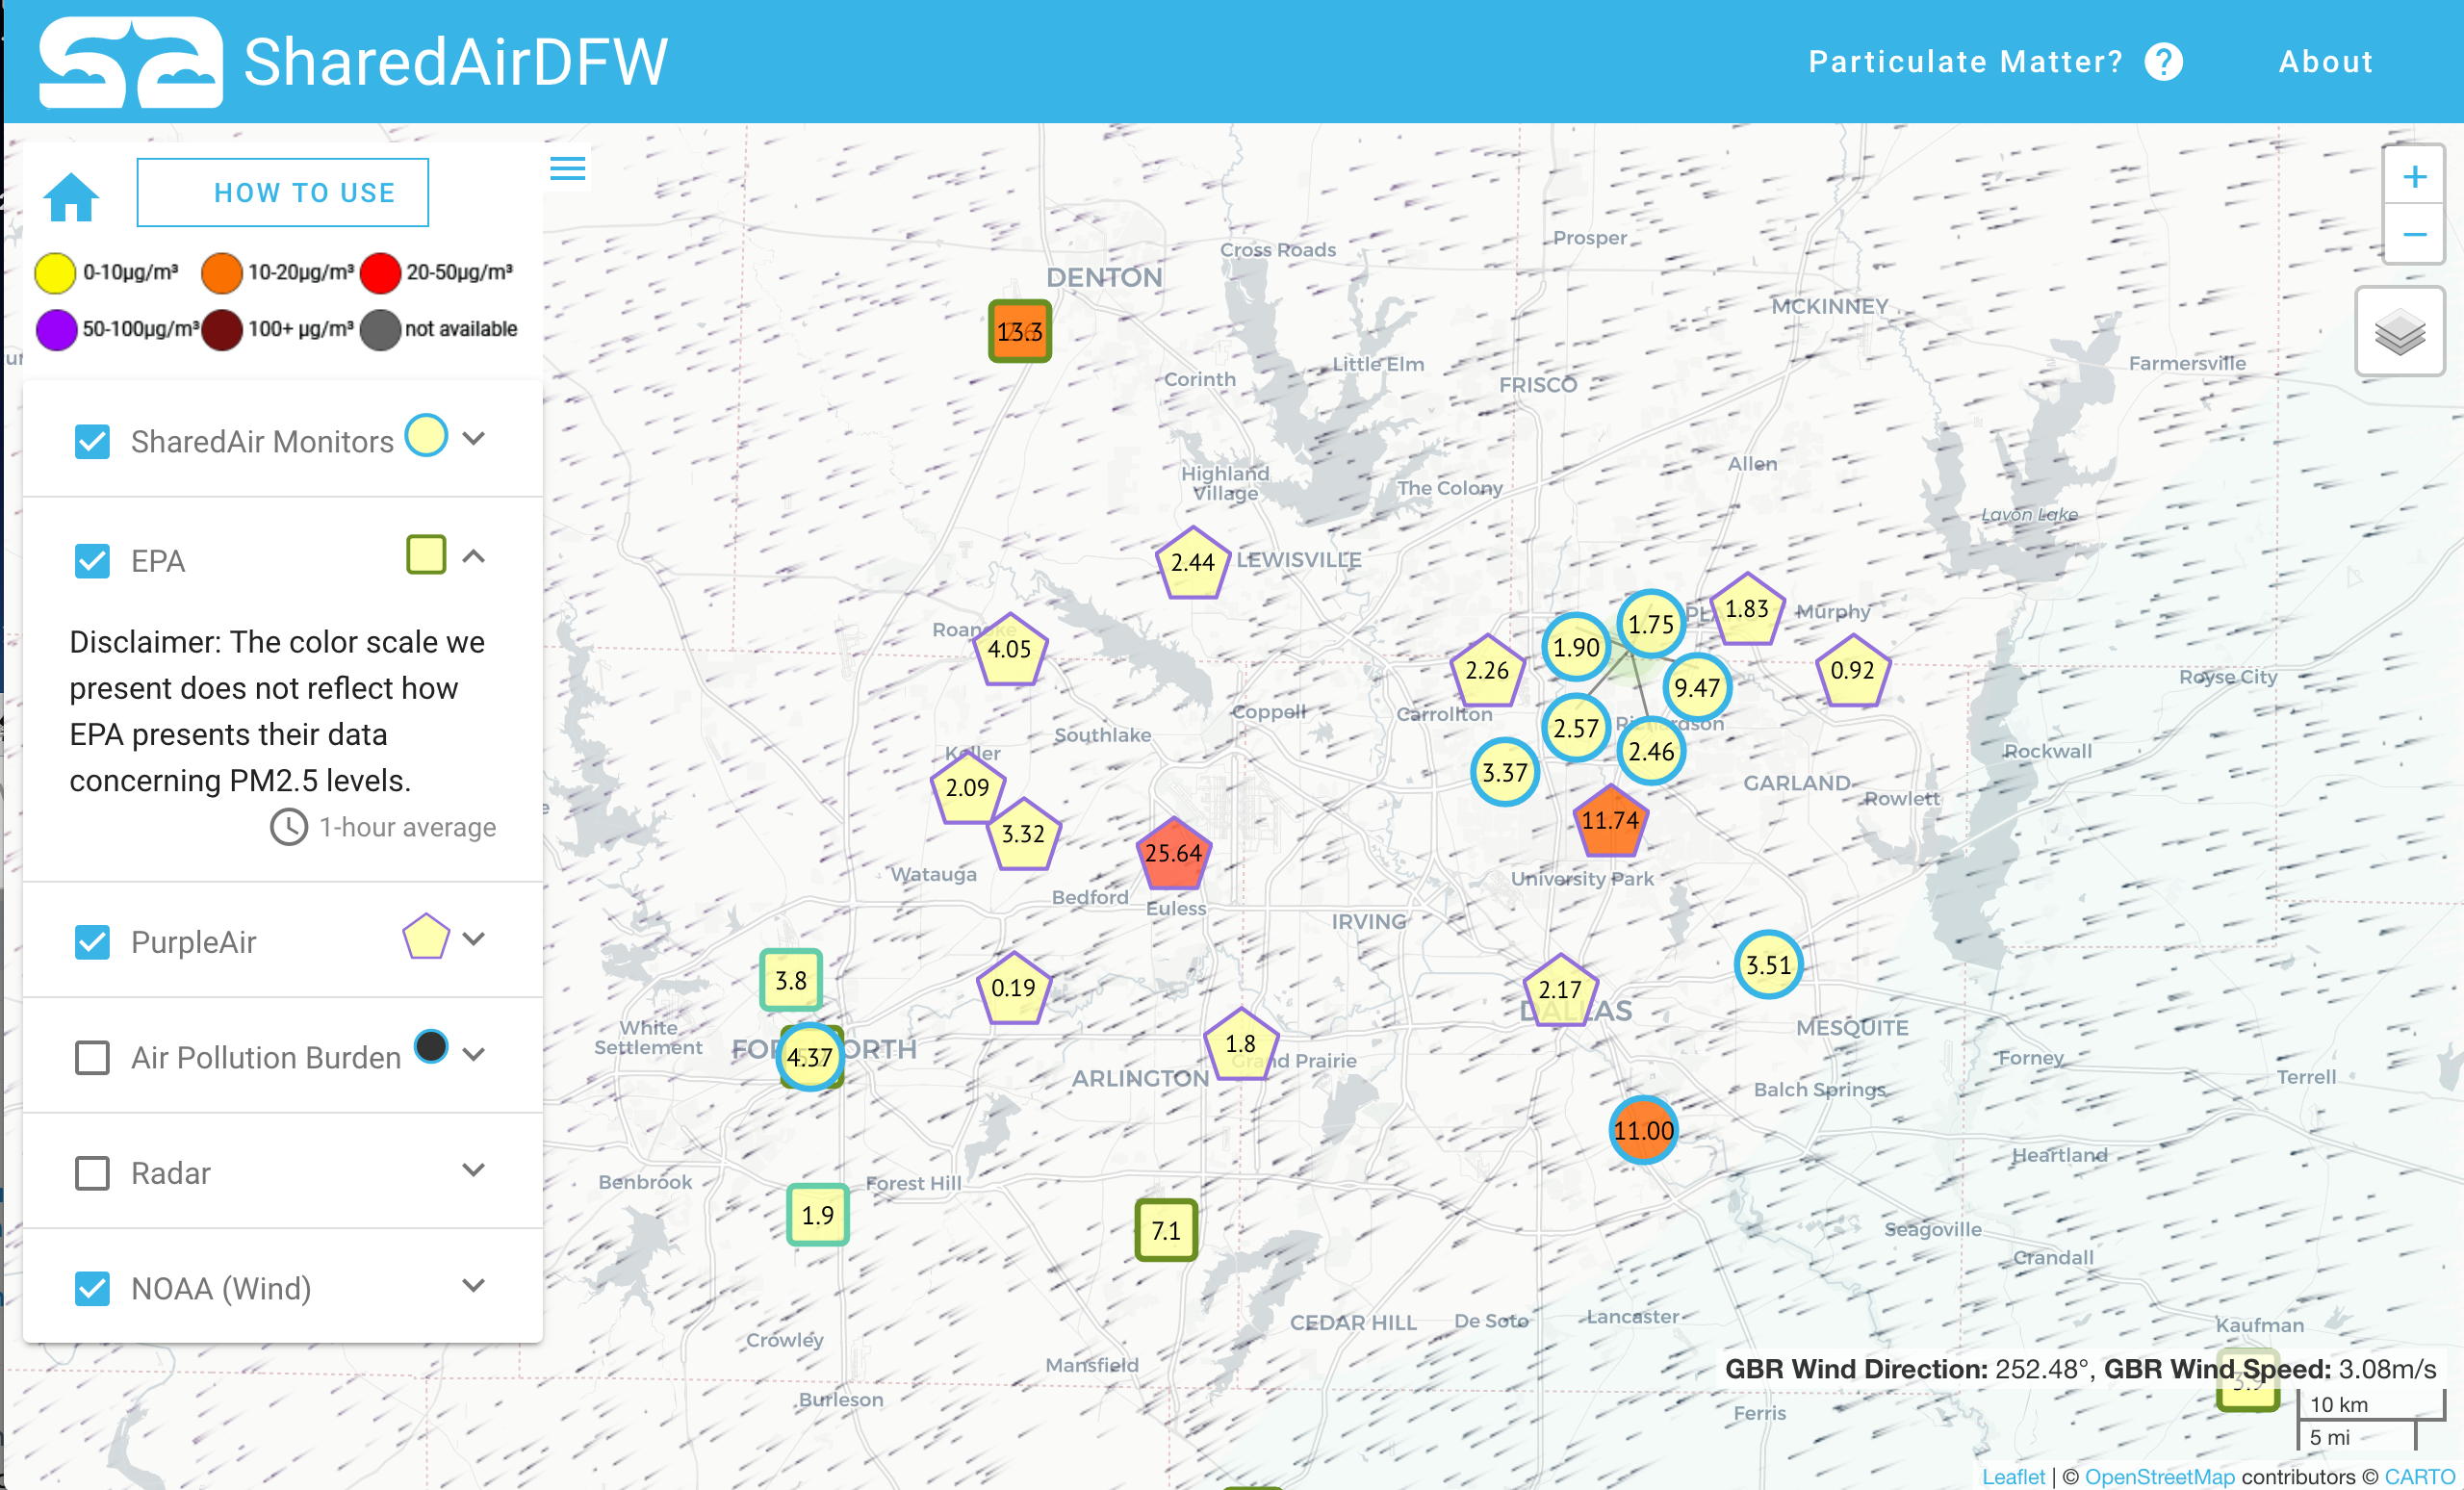 ICYMI: Media coverage of our new SharedAirDFW air monitoring network